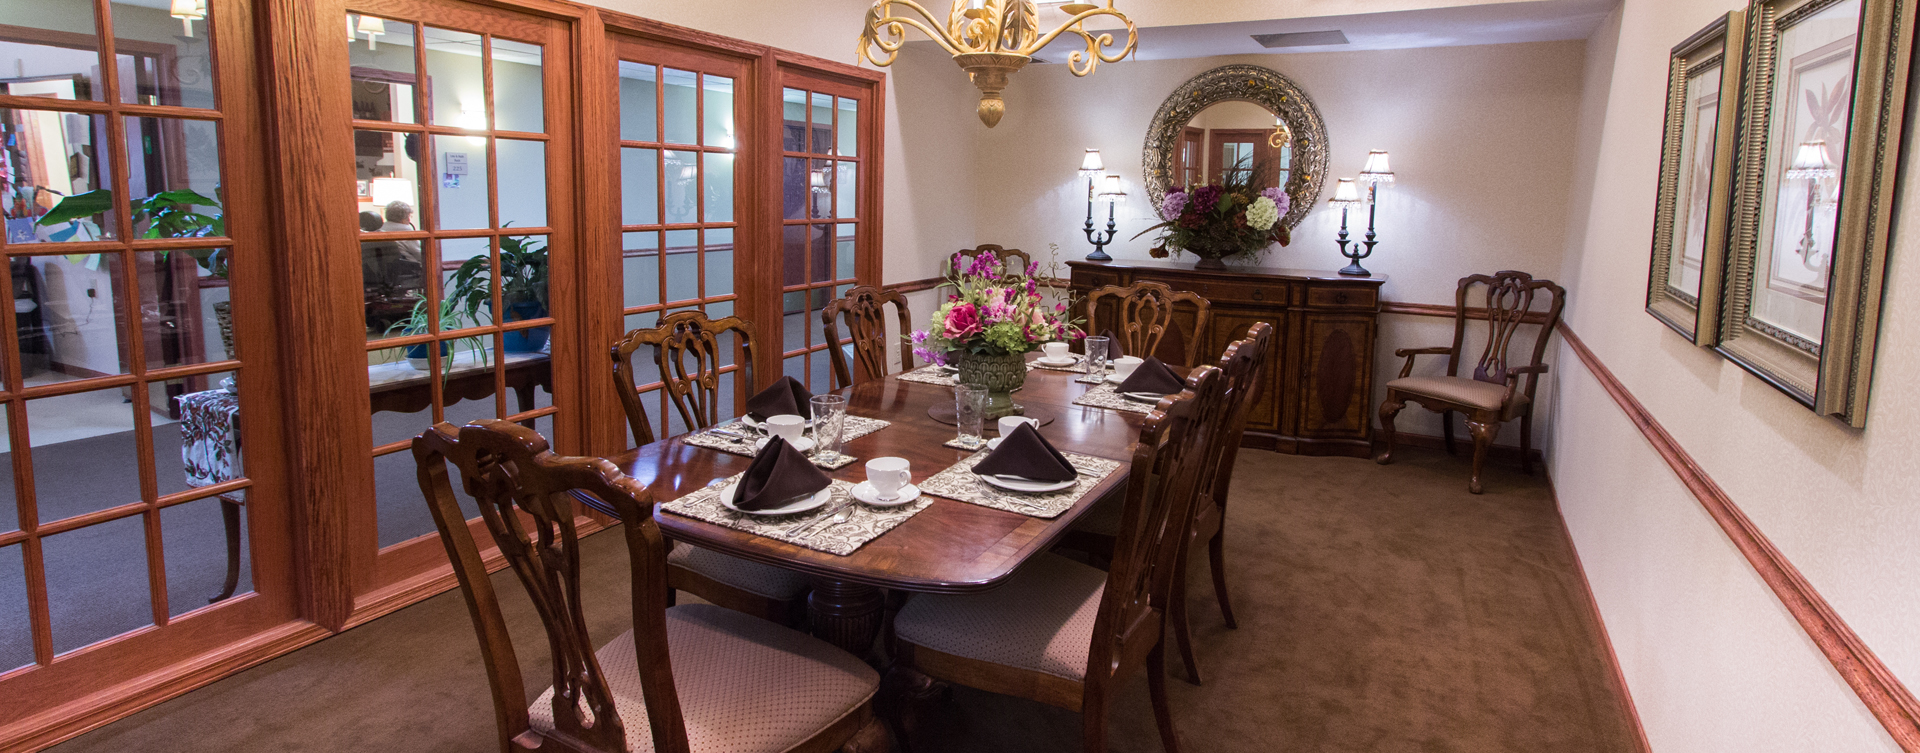 Have fun with themed and holiday meals in the private dining room at Bickford of Bourbonnais